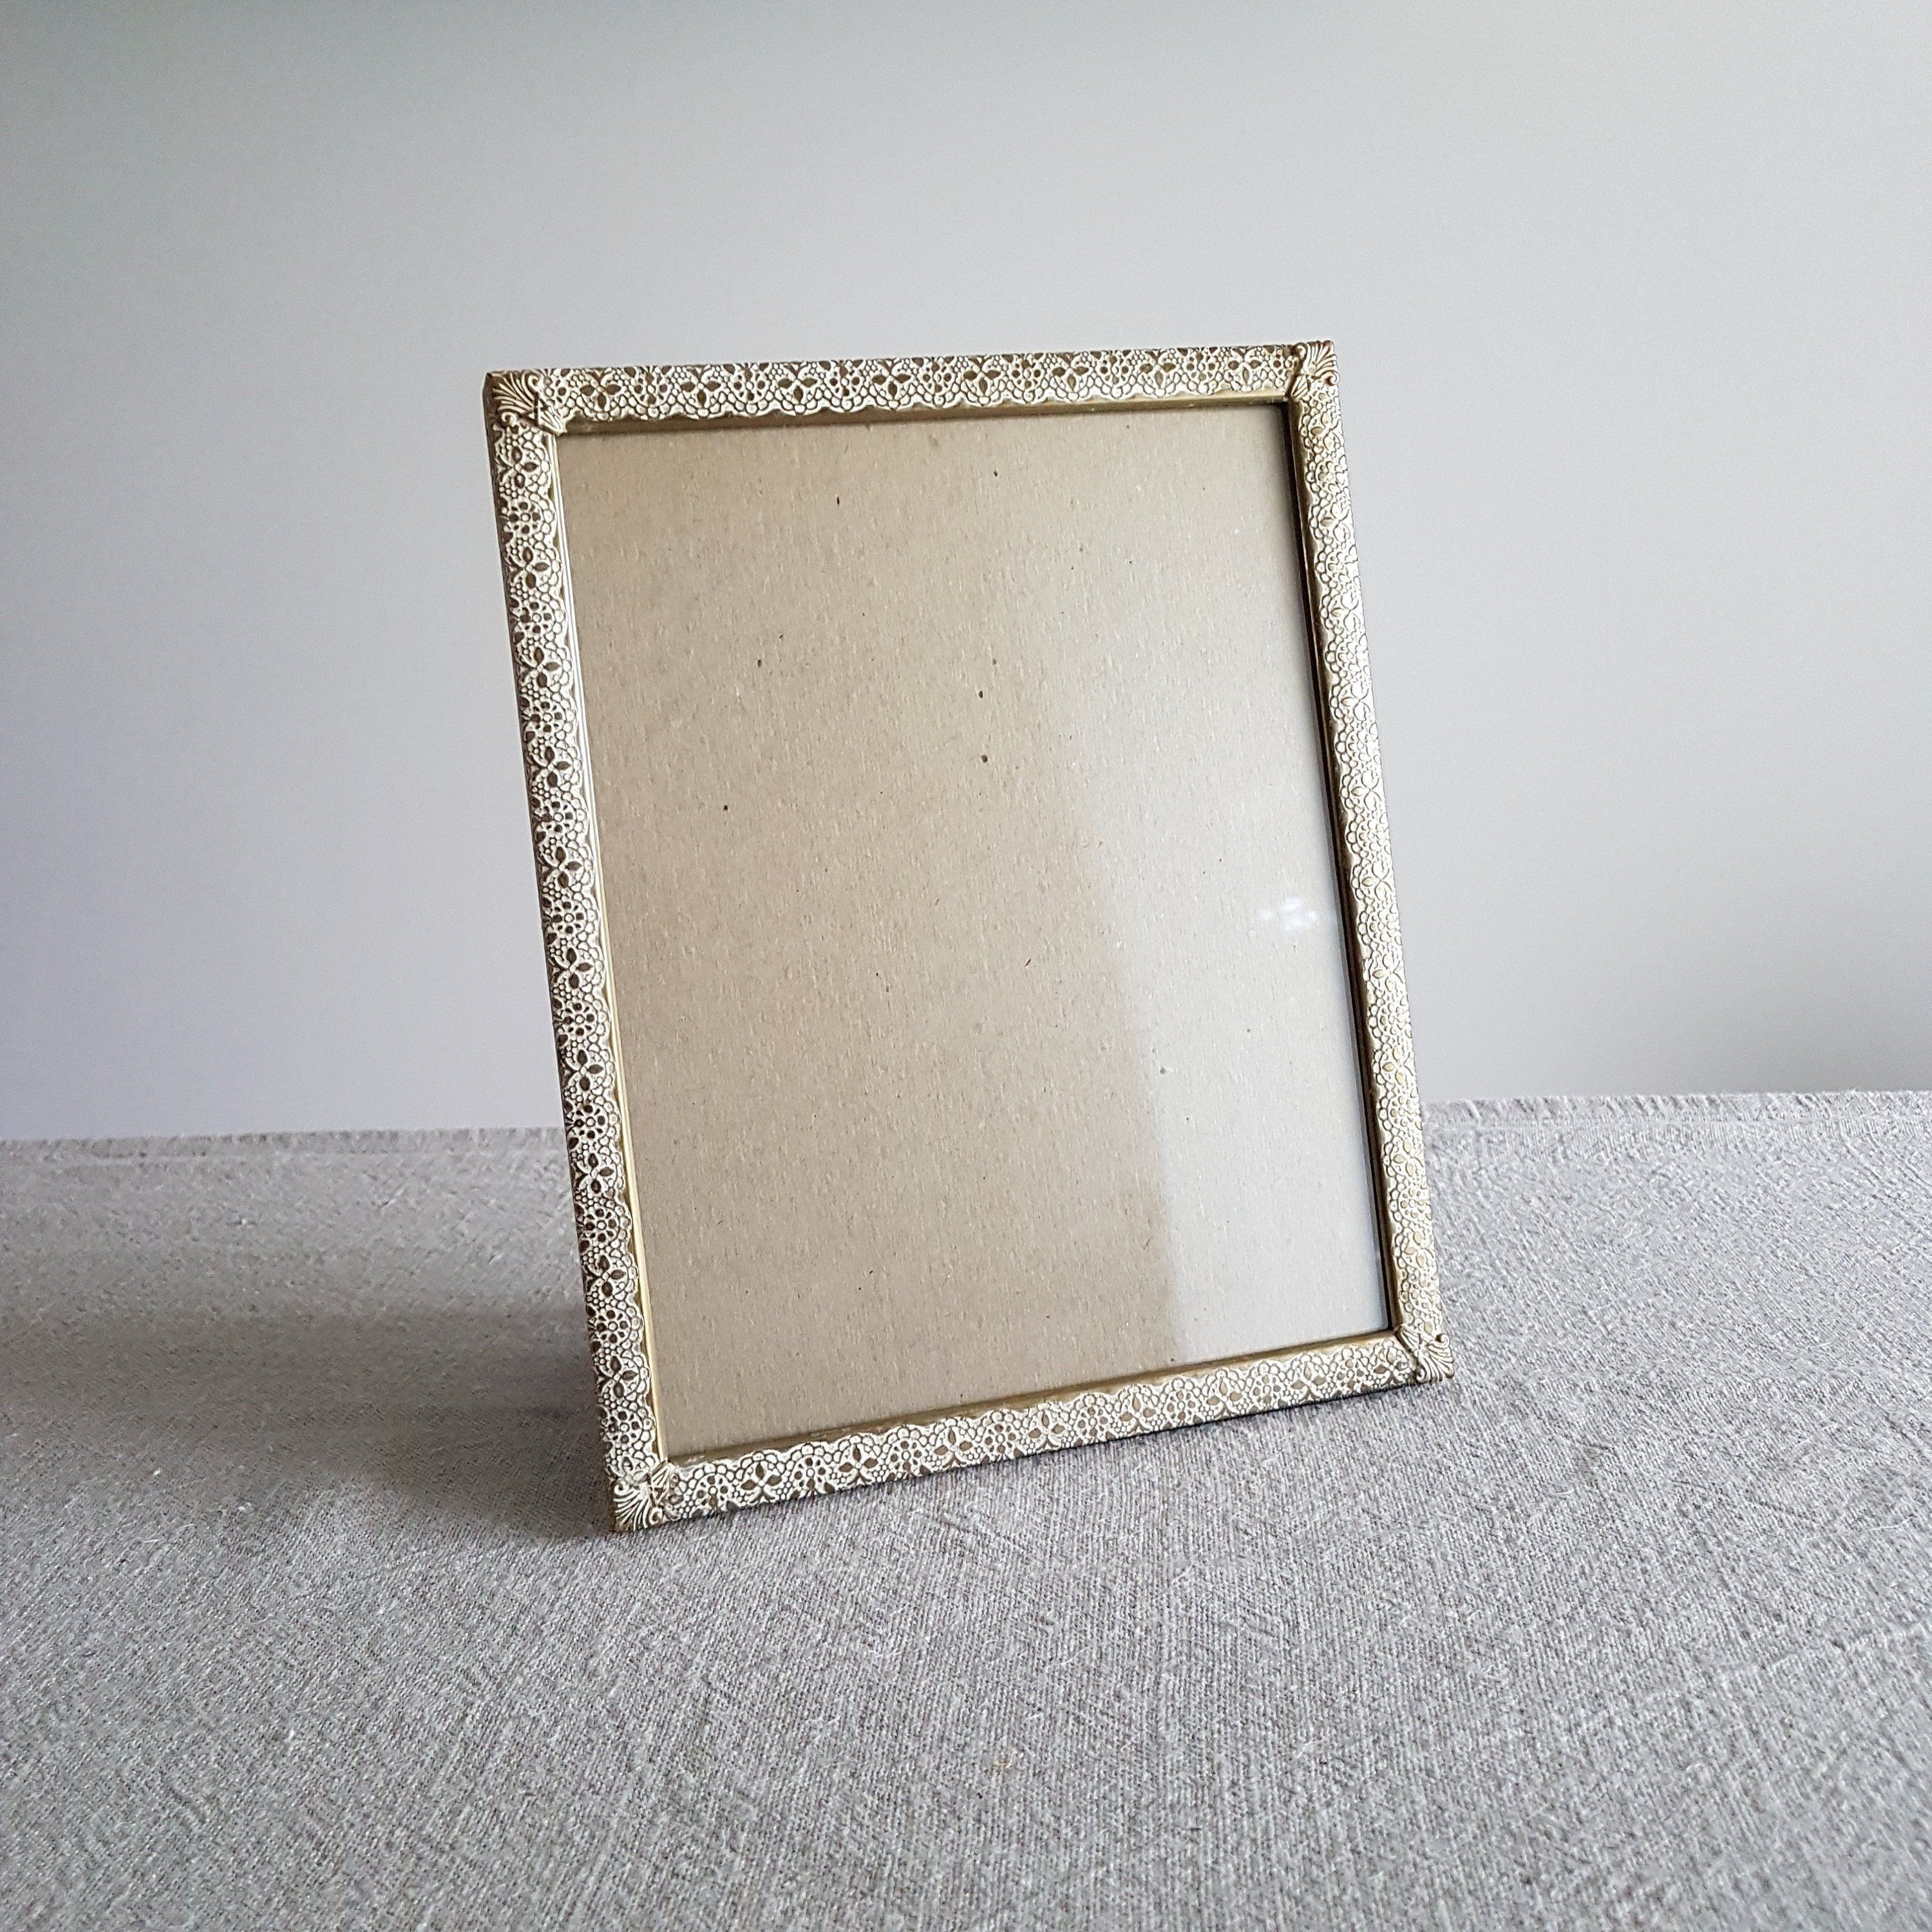 8 X 10 Gold Metal Picture Frame With Lace Design White Washed Look Gold Photo Frame W White Paint Accents Wedding S Metal Picture Frames Gold Photo Frames Frame